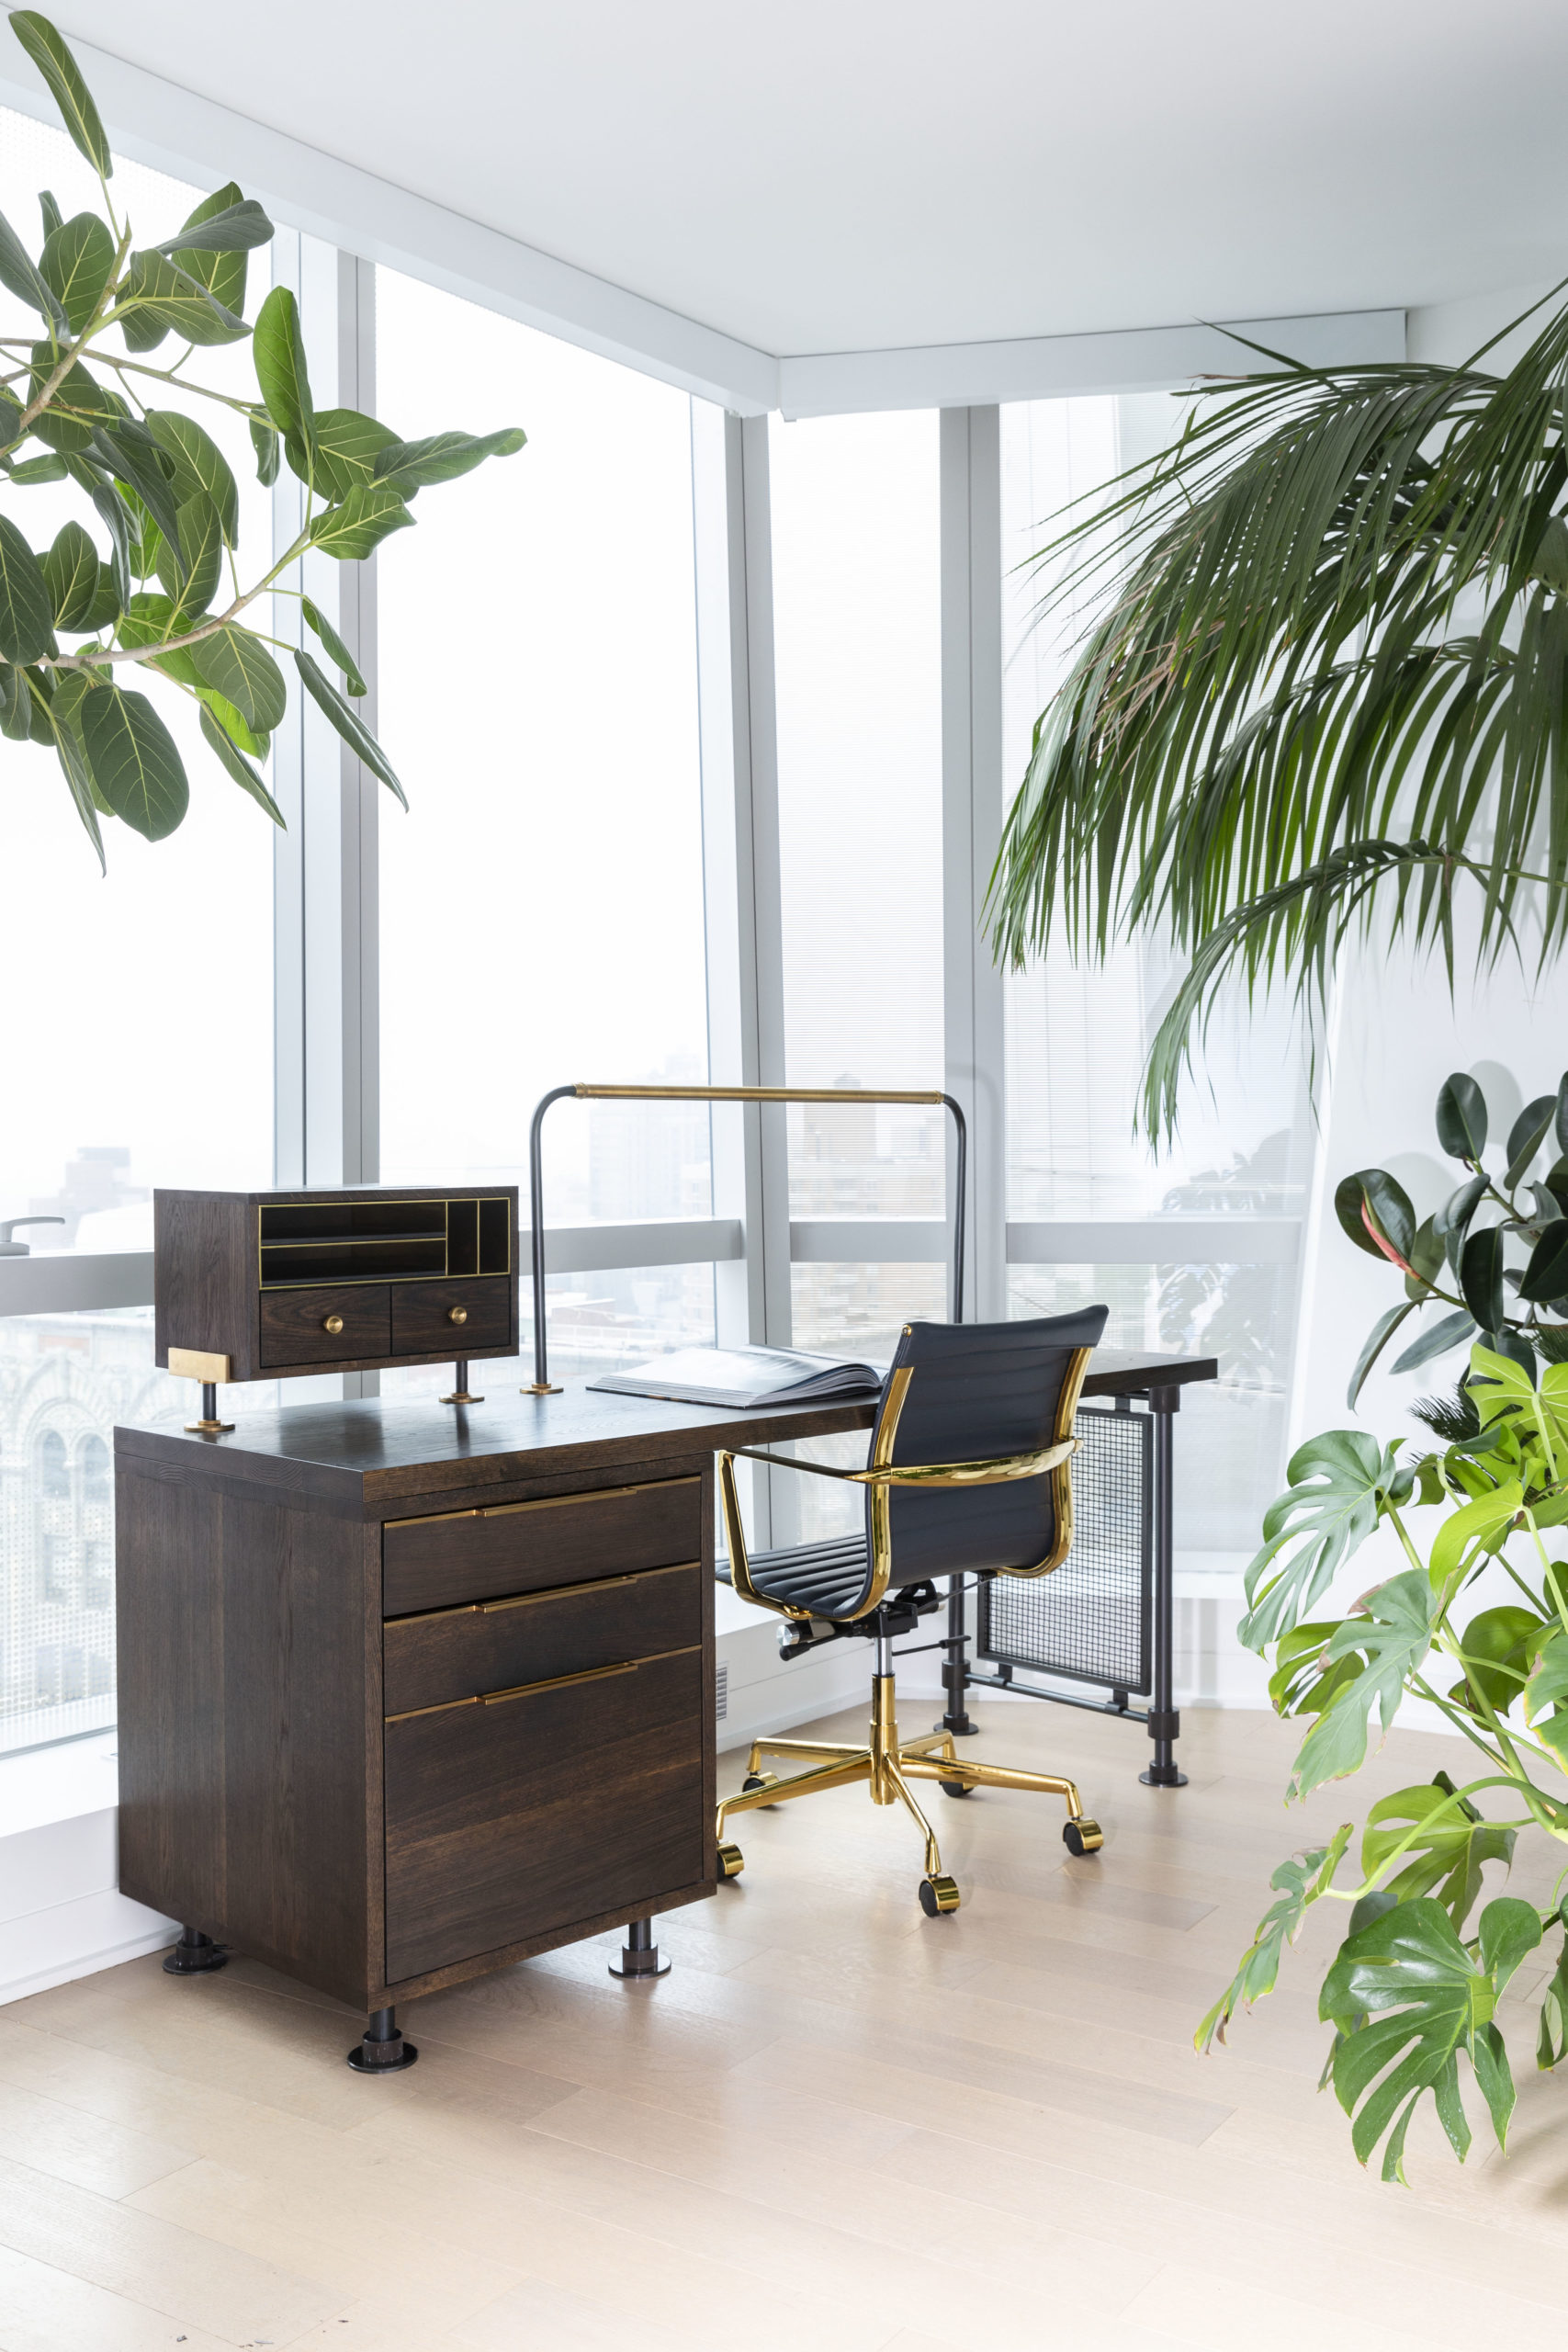 amuneal_products_WNWN_NYDC_nyc-showroom_2Loft-Desk-with-Plants-Angle-scaled-1